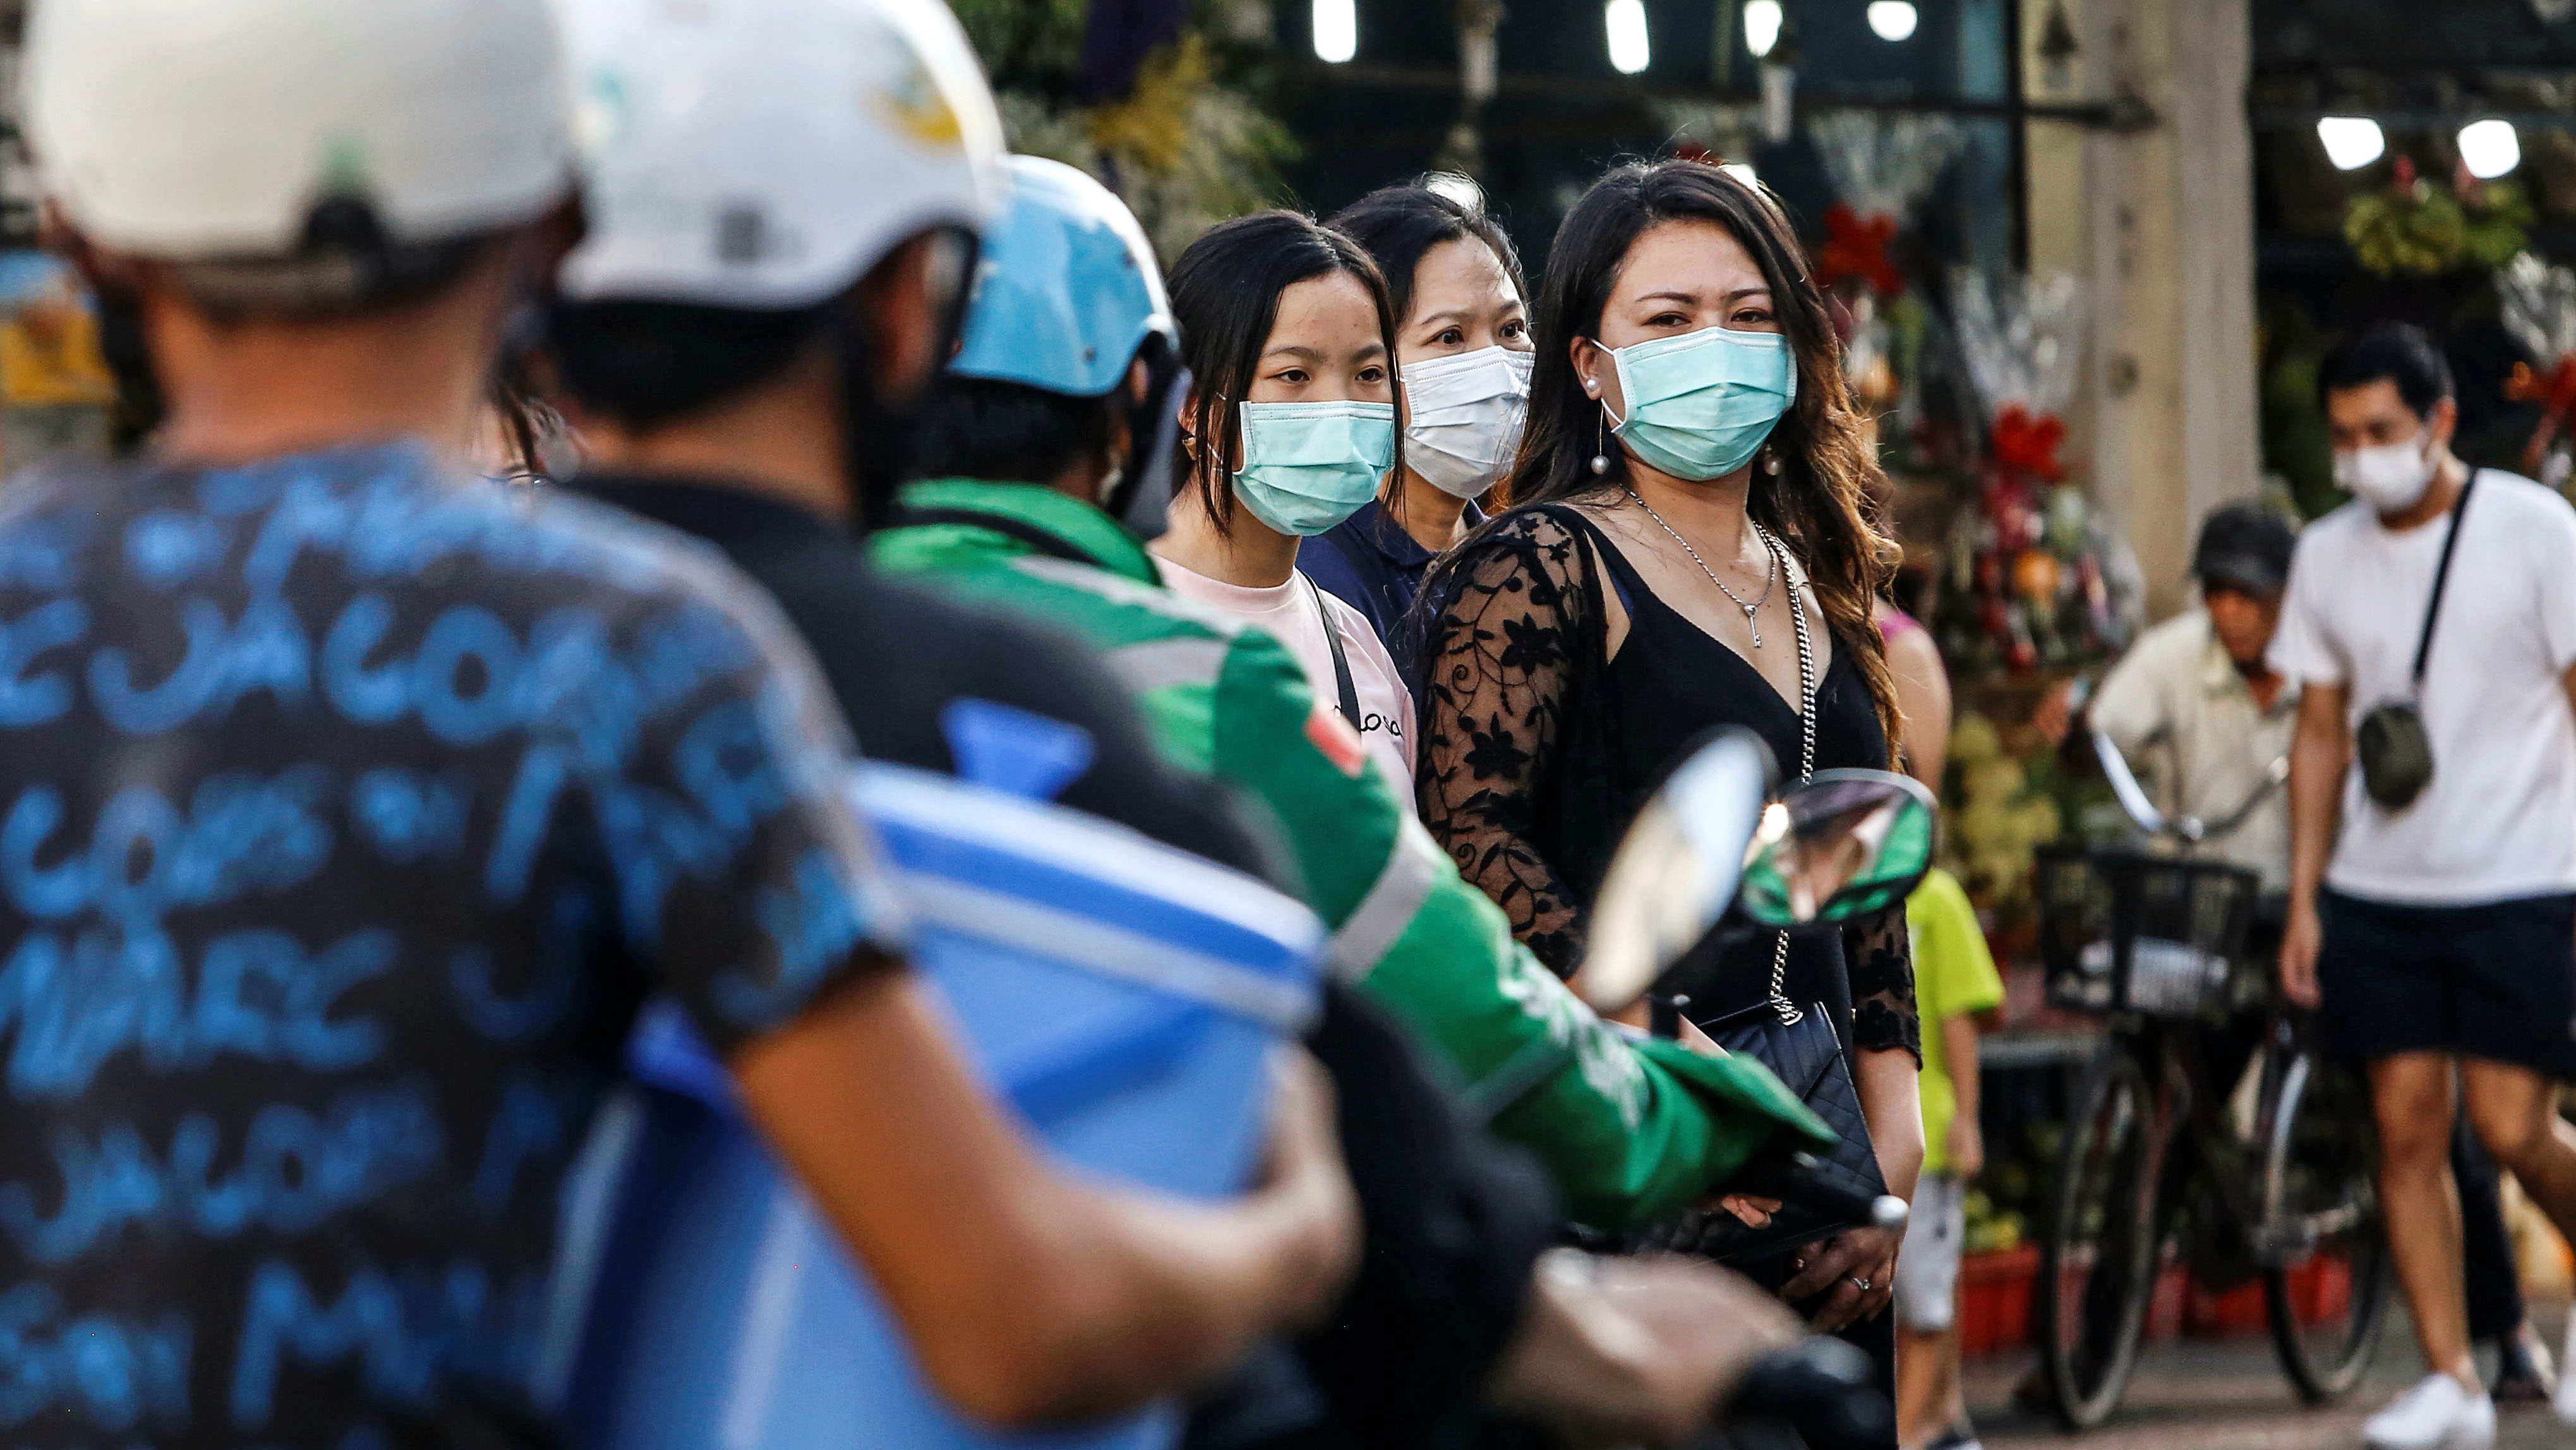 Vietnam's Ho Chi Minh City faces medical collapse as COVID surges - Nikkei  Asia